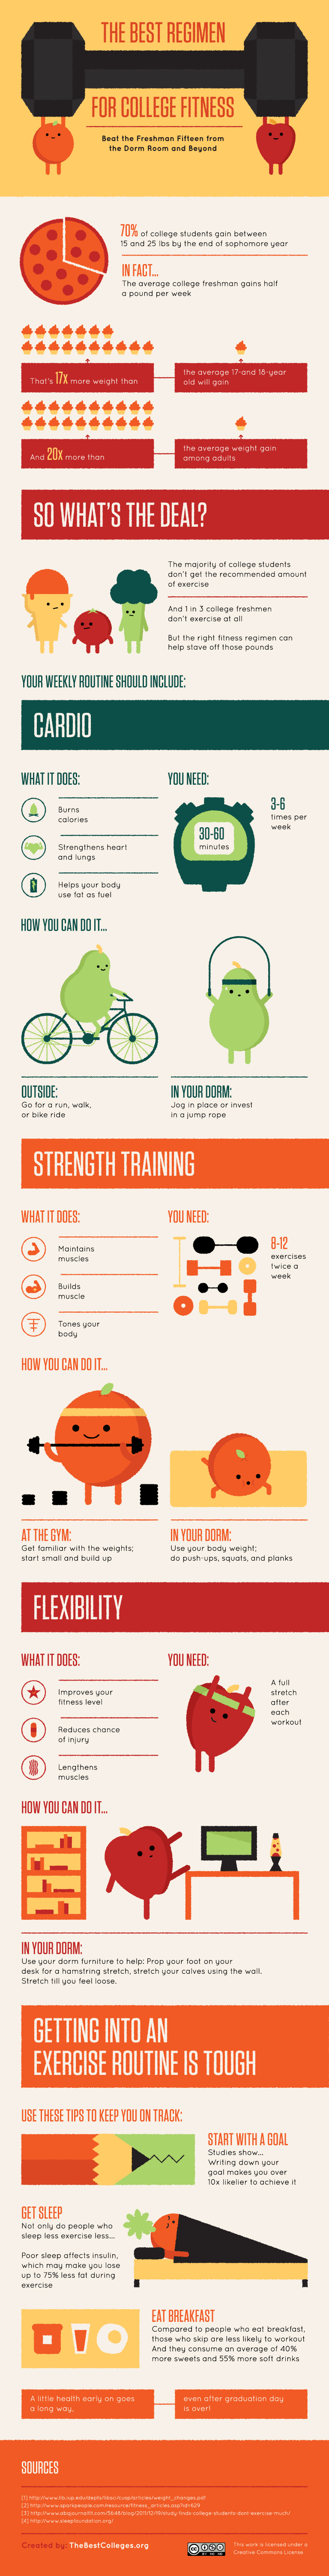 Staying Fit in College: A Simple but Hardworking Regimen - Infographic